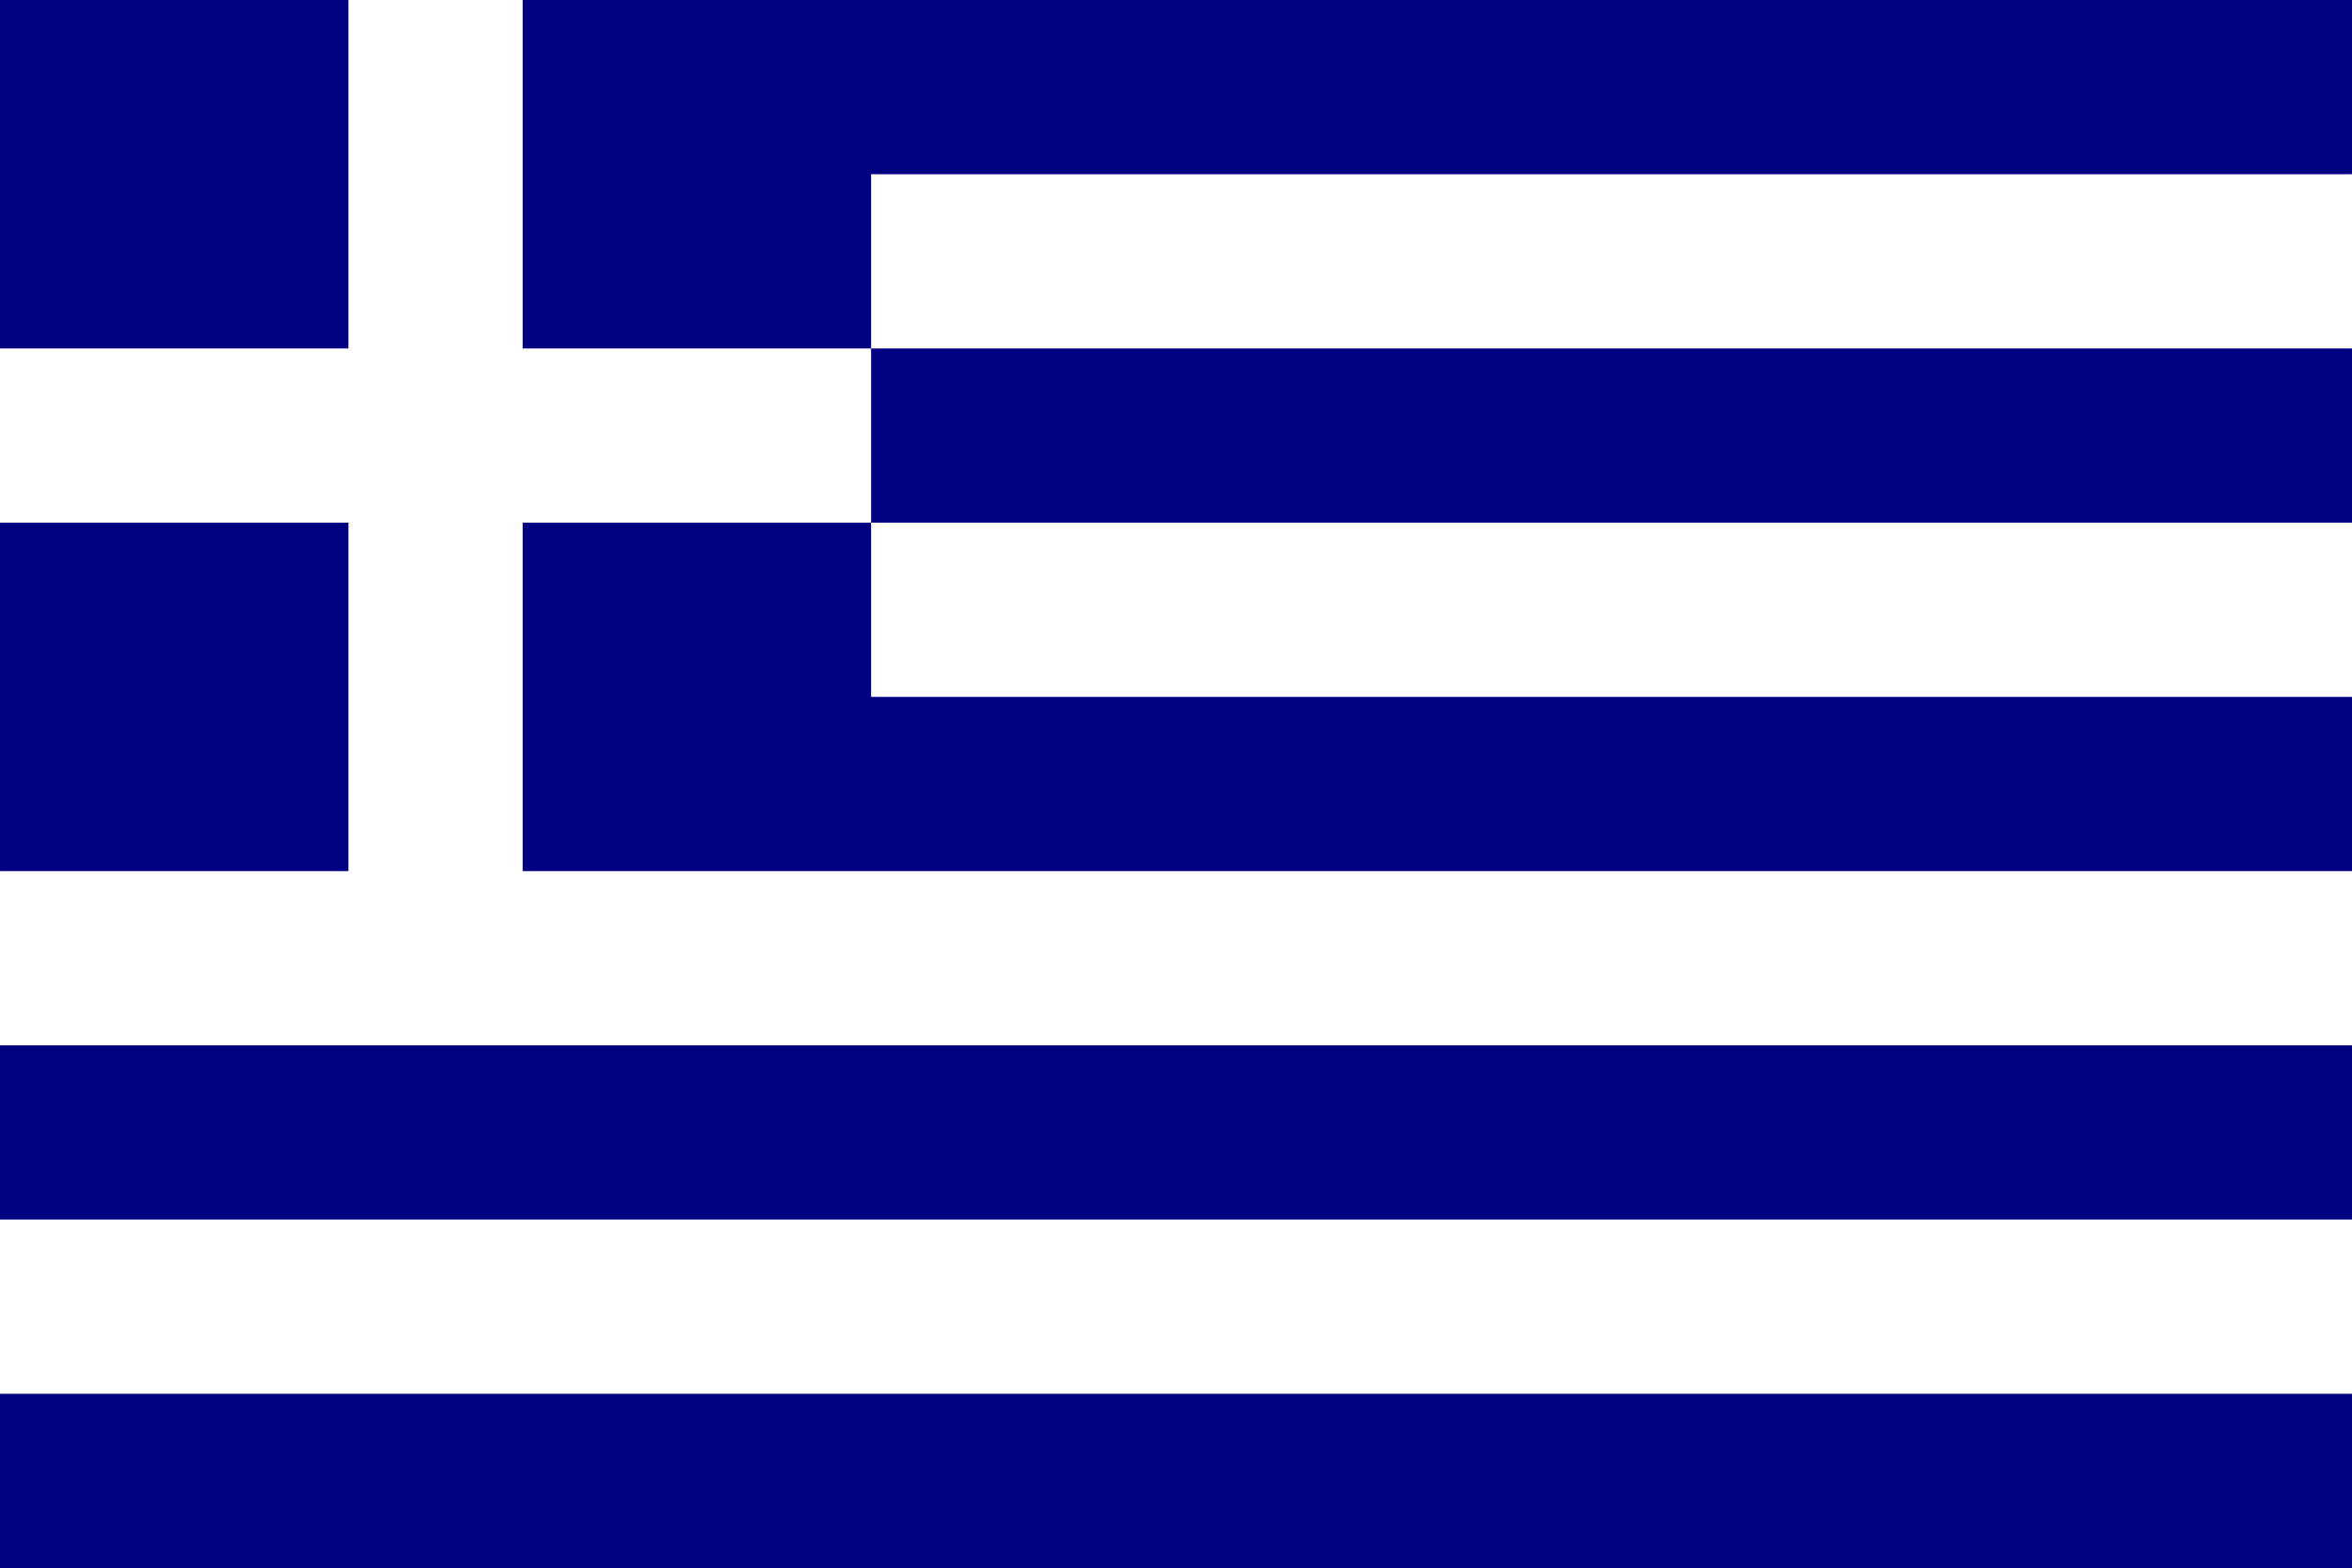 Greece | Flags of countries